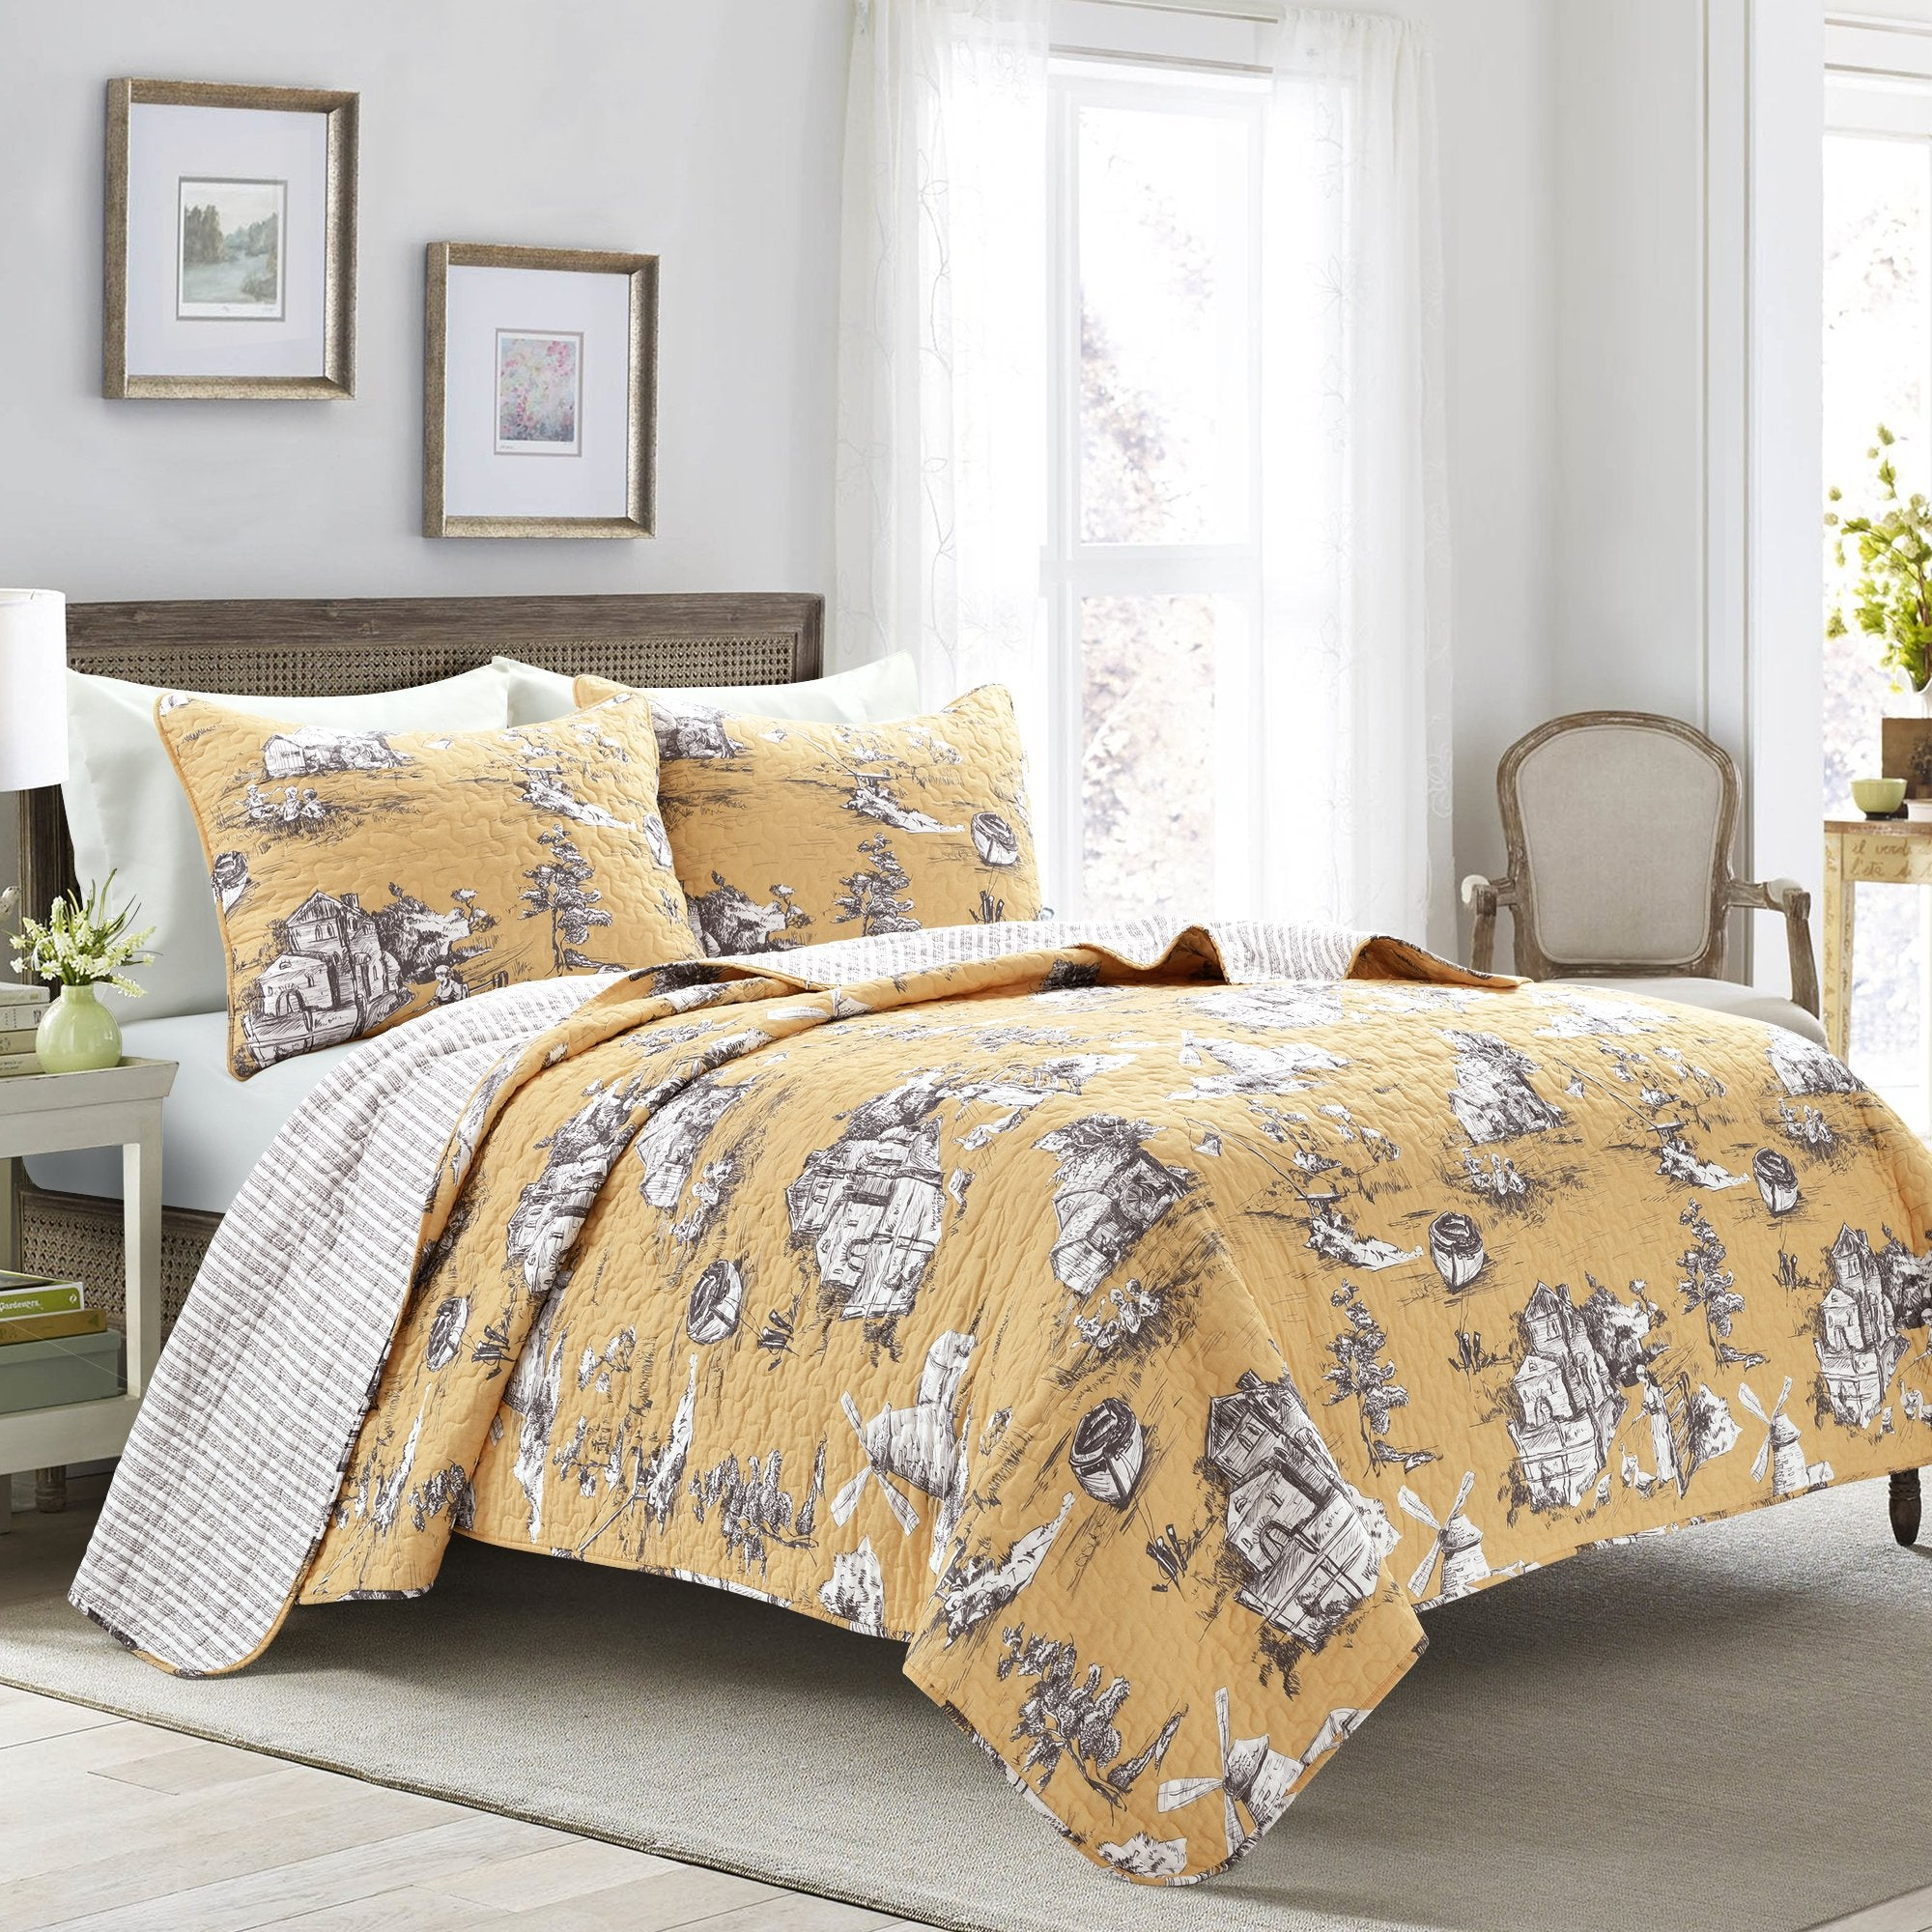 Bedding Bundle: French Country Toile Quilt Set + Darla Comforter Set